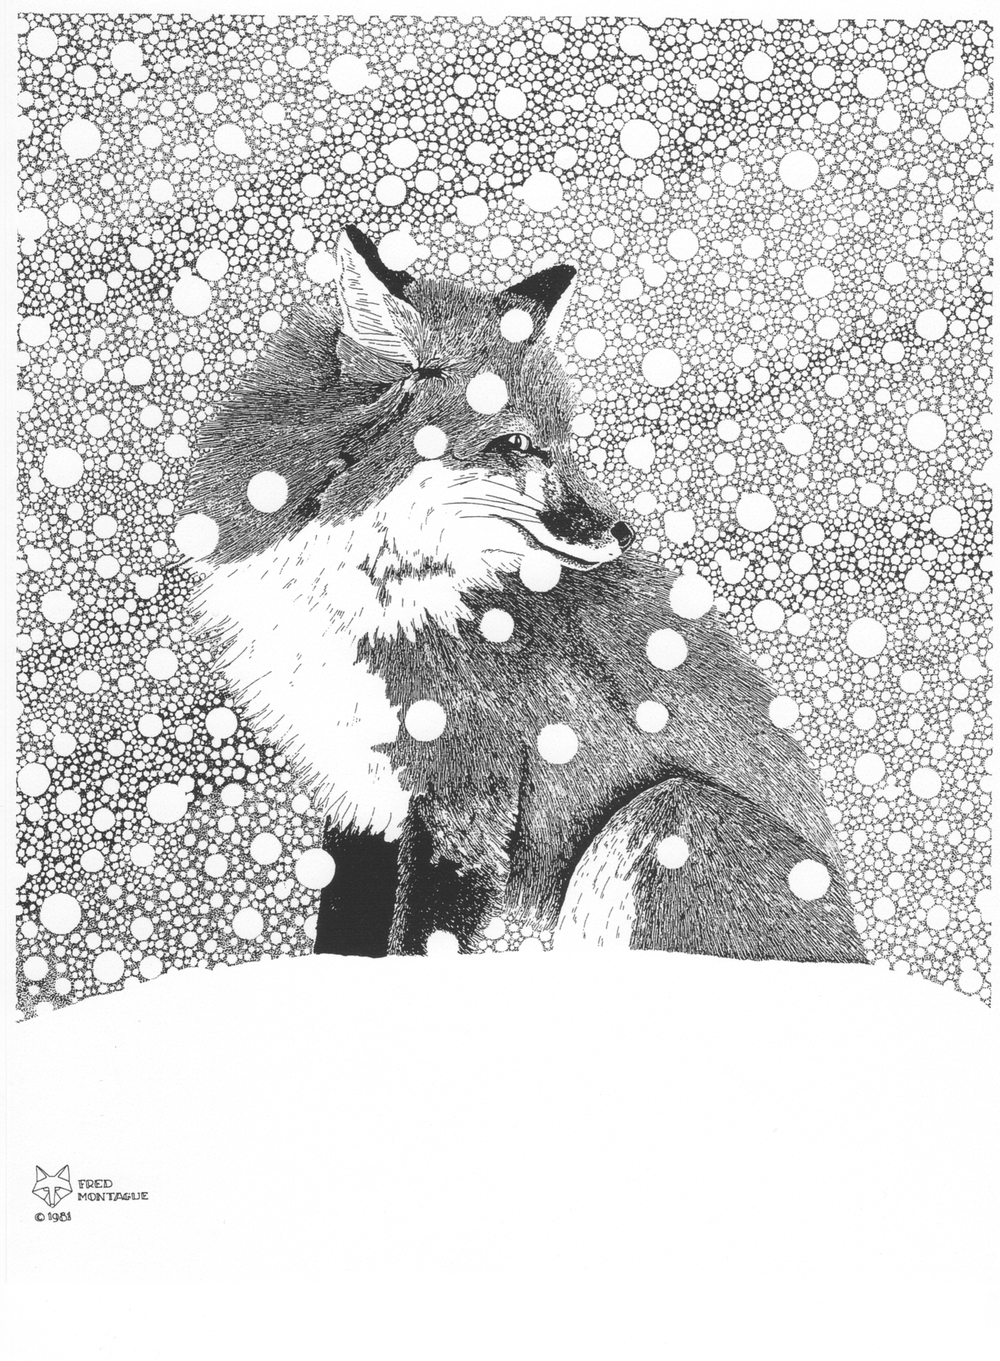 """Backtrack"" (red fox), photolithograph by Fred Montague"